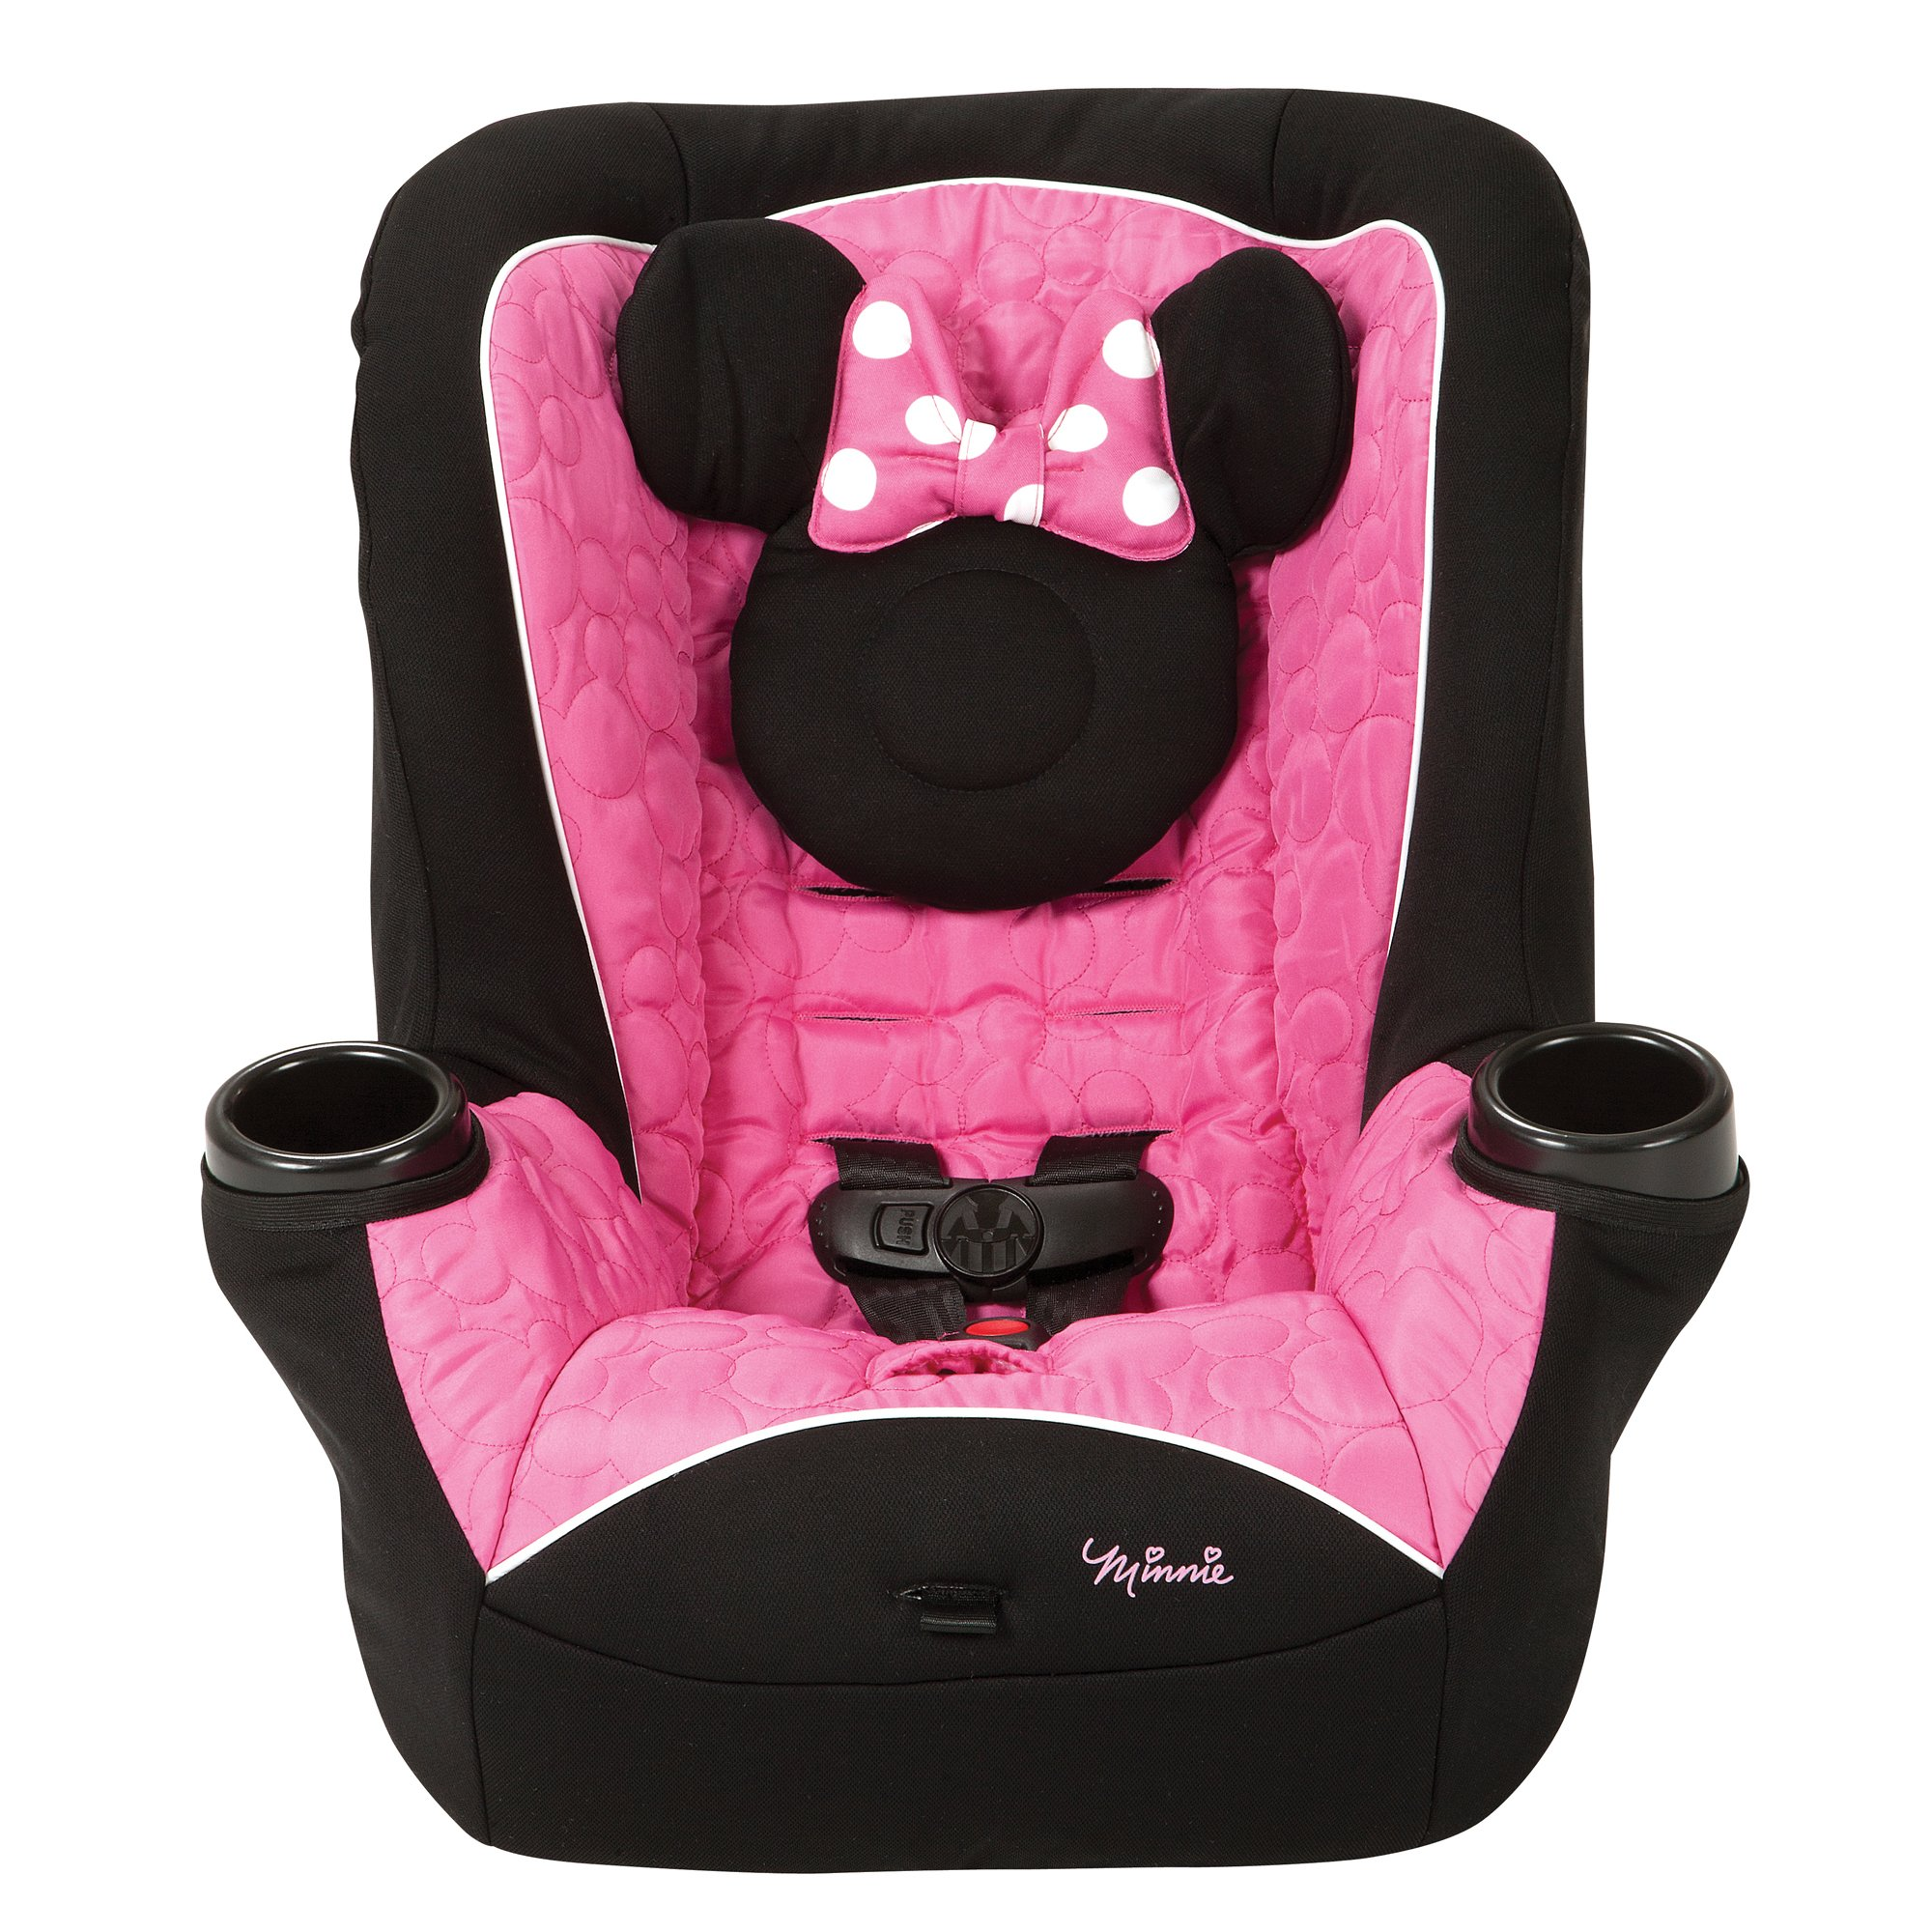 disney apt convertible car seat mouseketeer minnie amazon. Black Bedroom Furniture Sets. Home Design Ideas